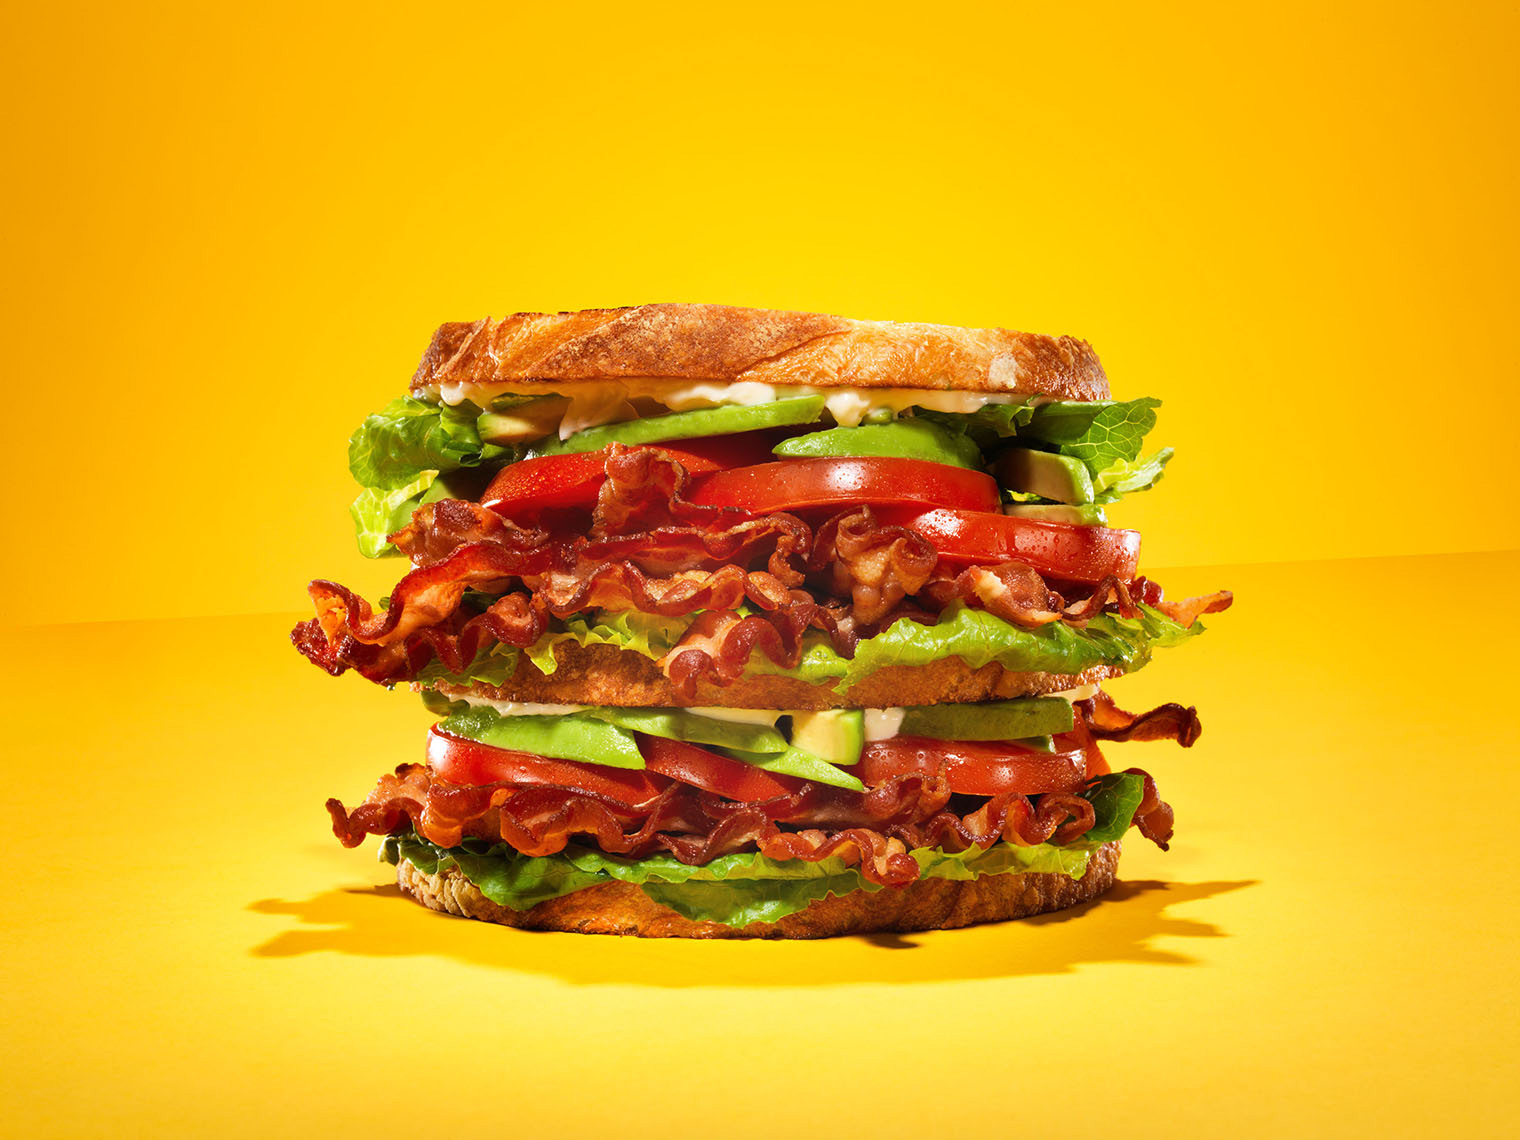 blt-blta-sandwich-food-jim-golden